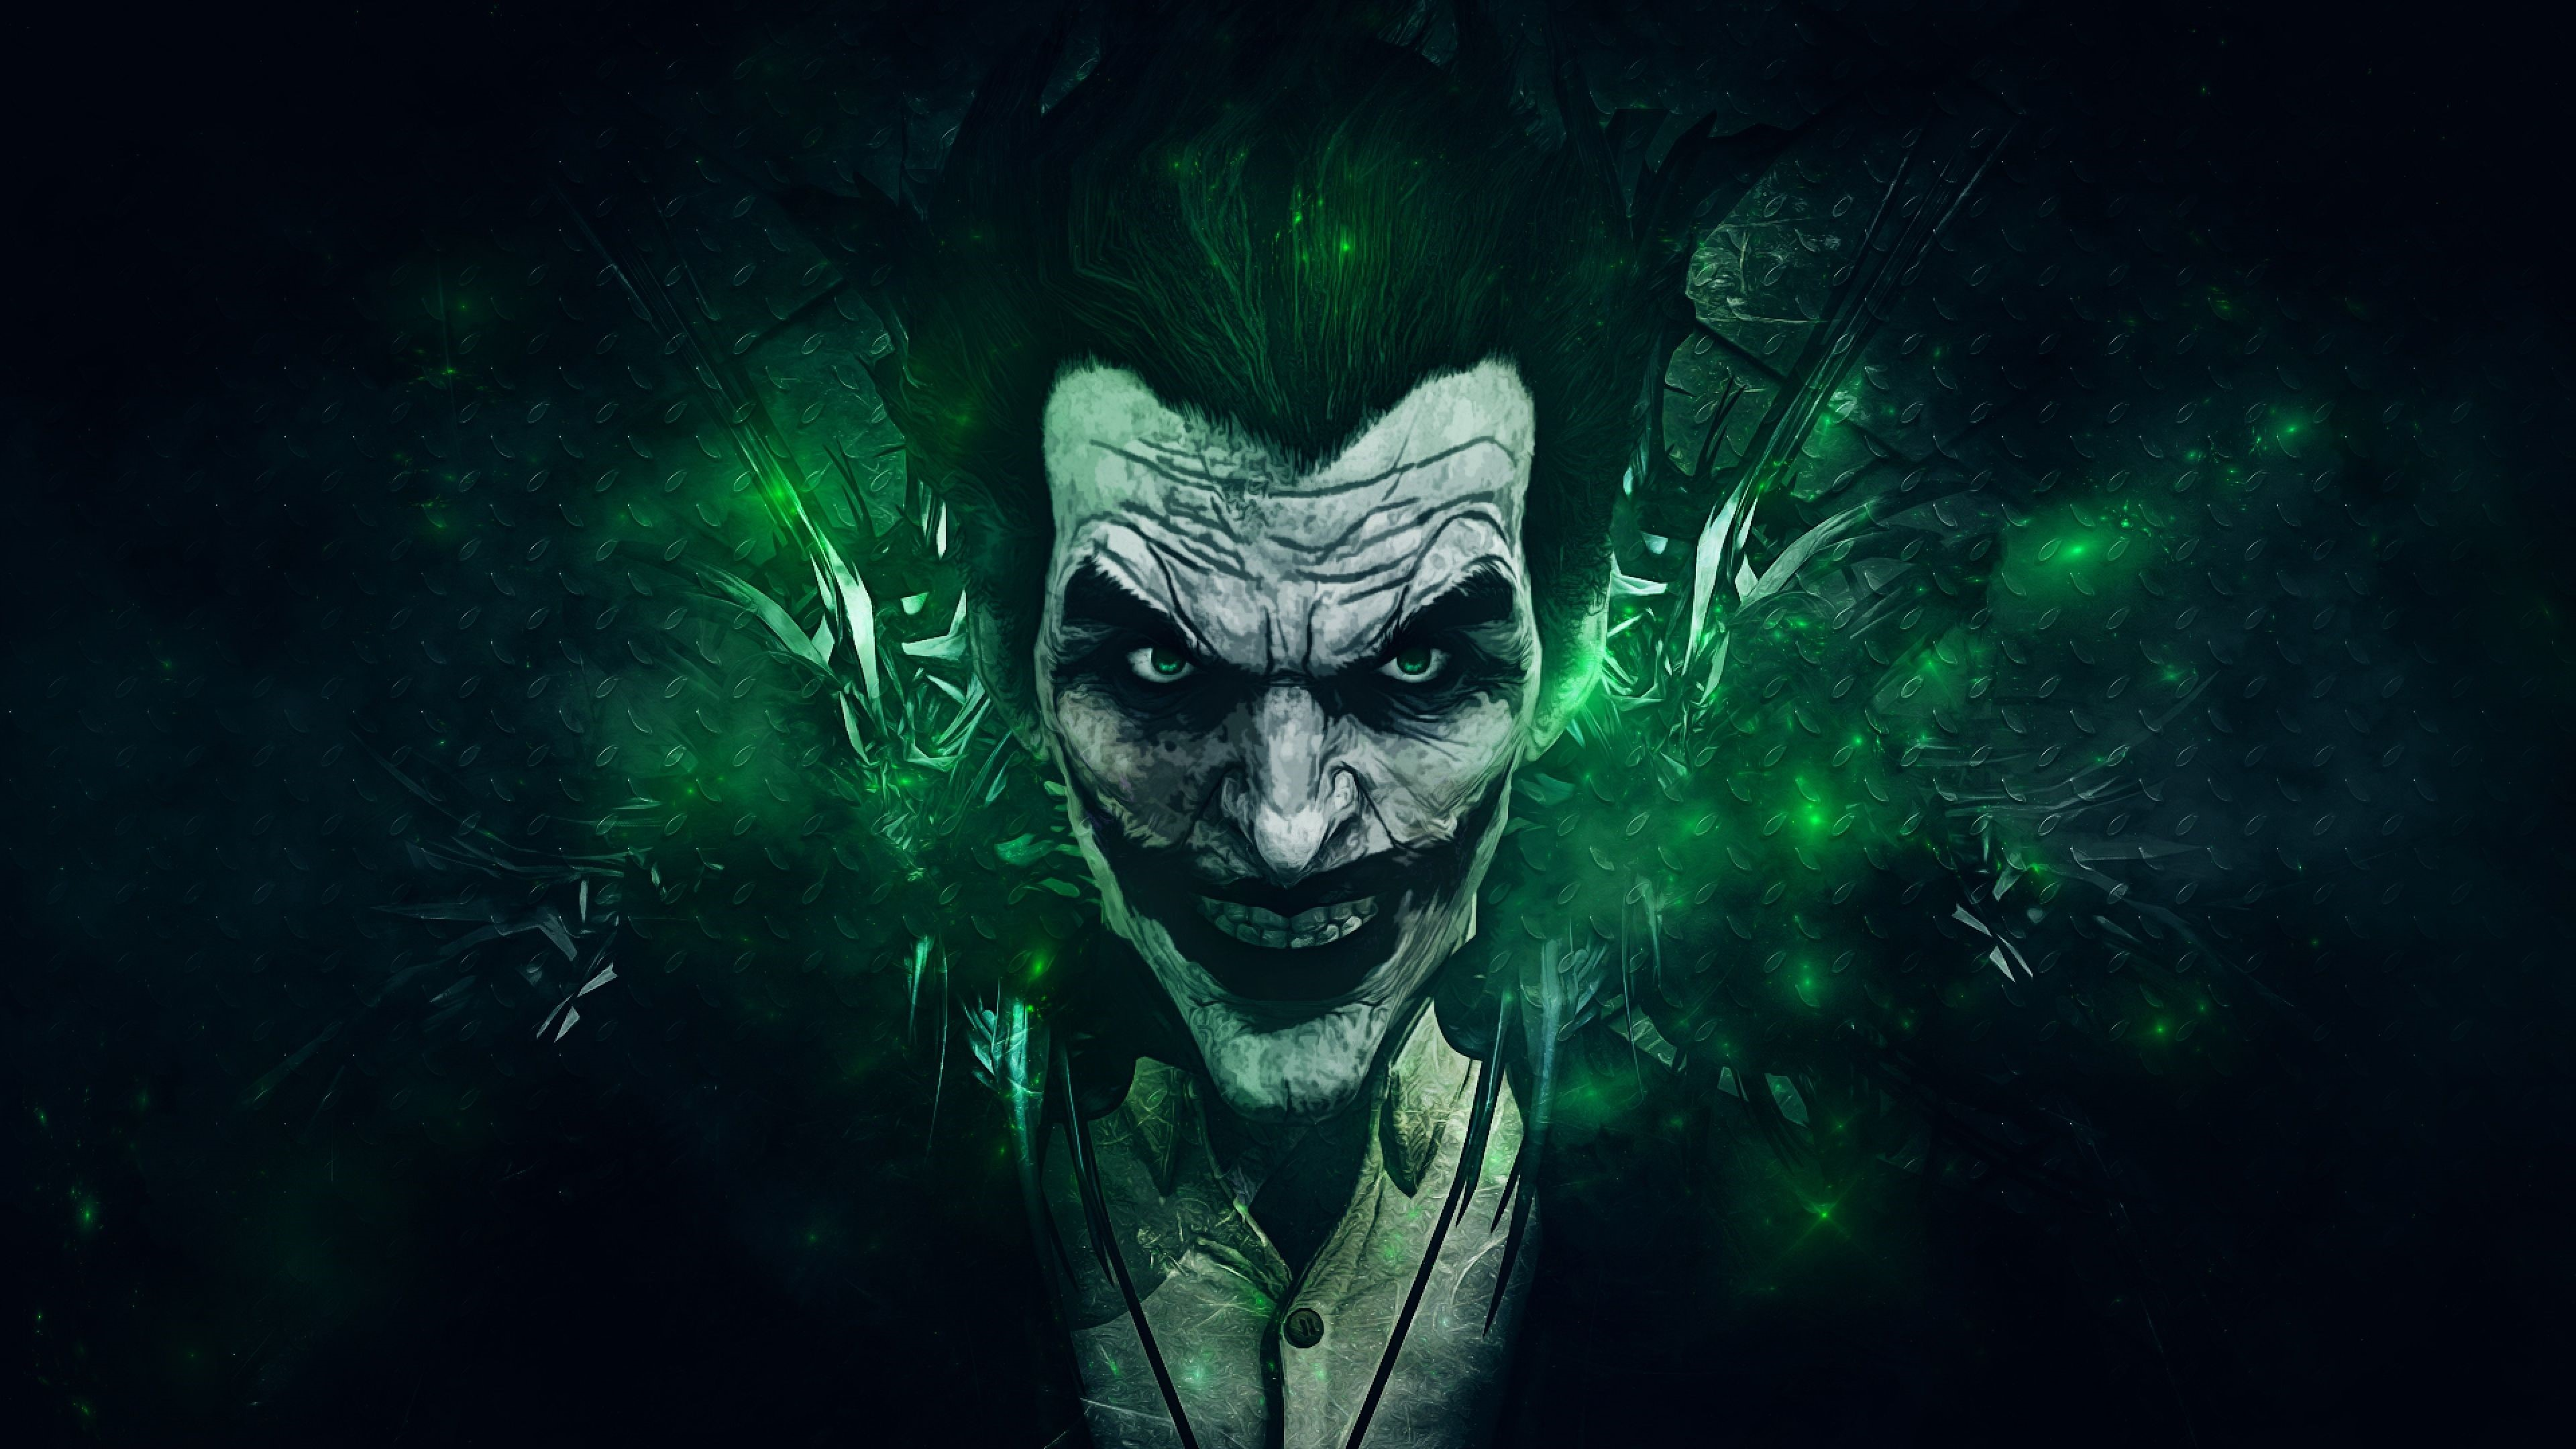 Joker 4K Wallpapers